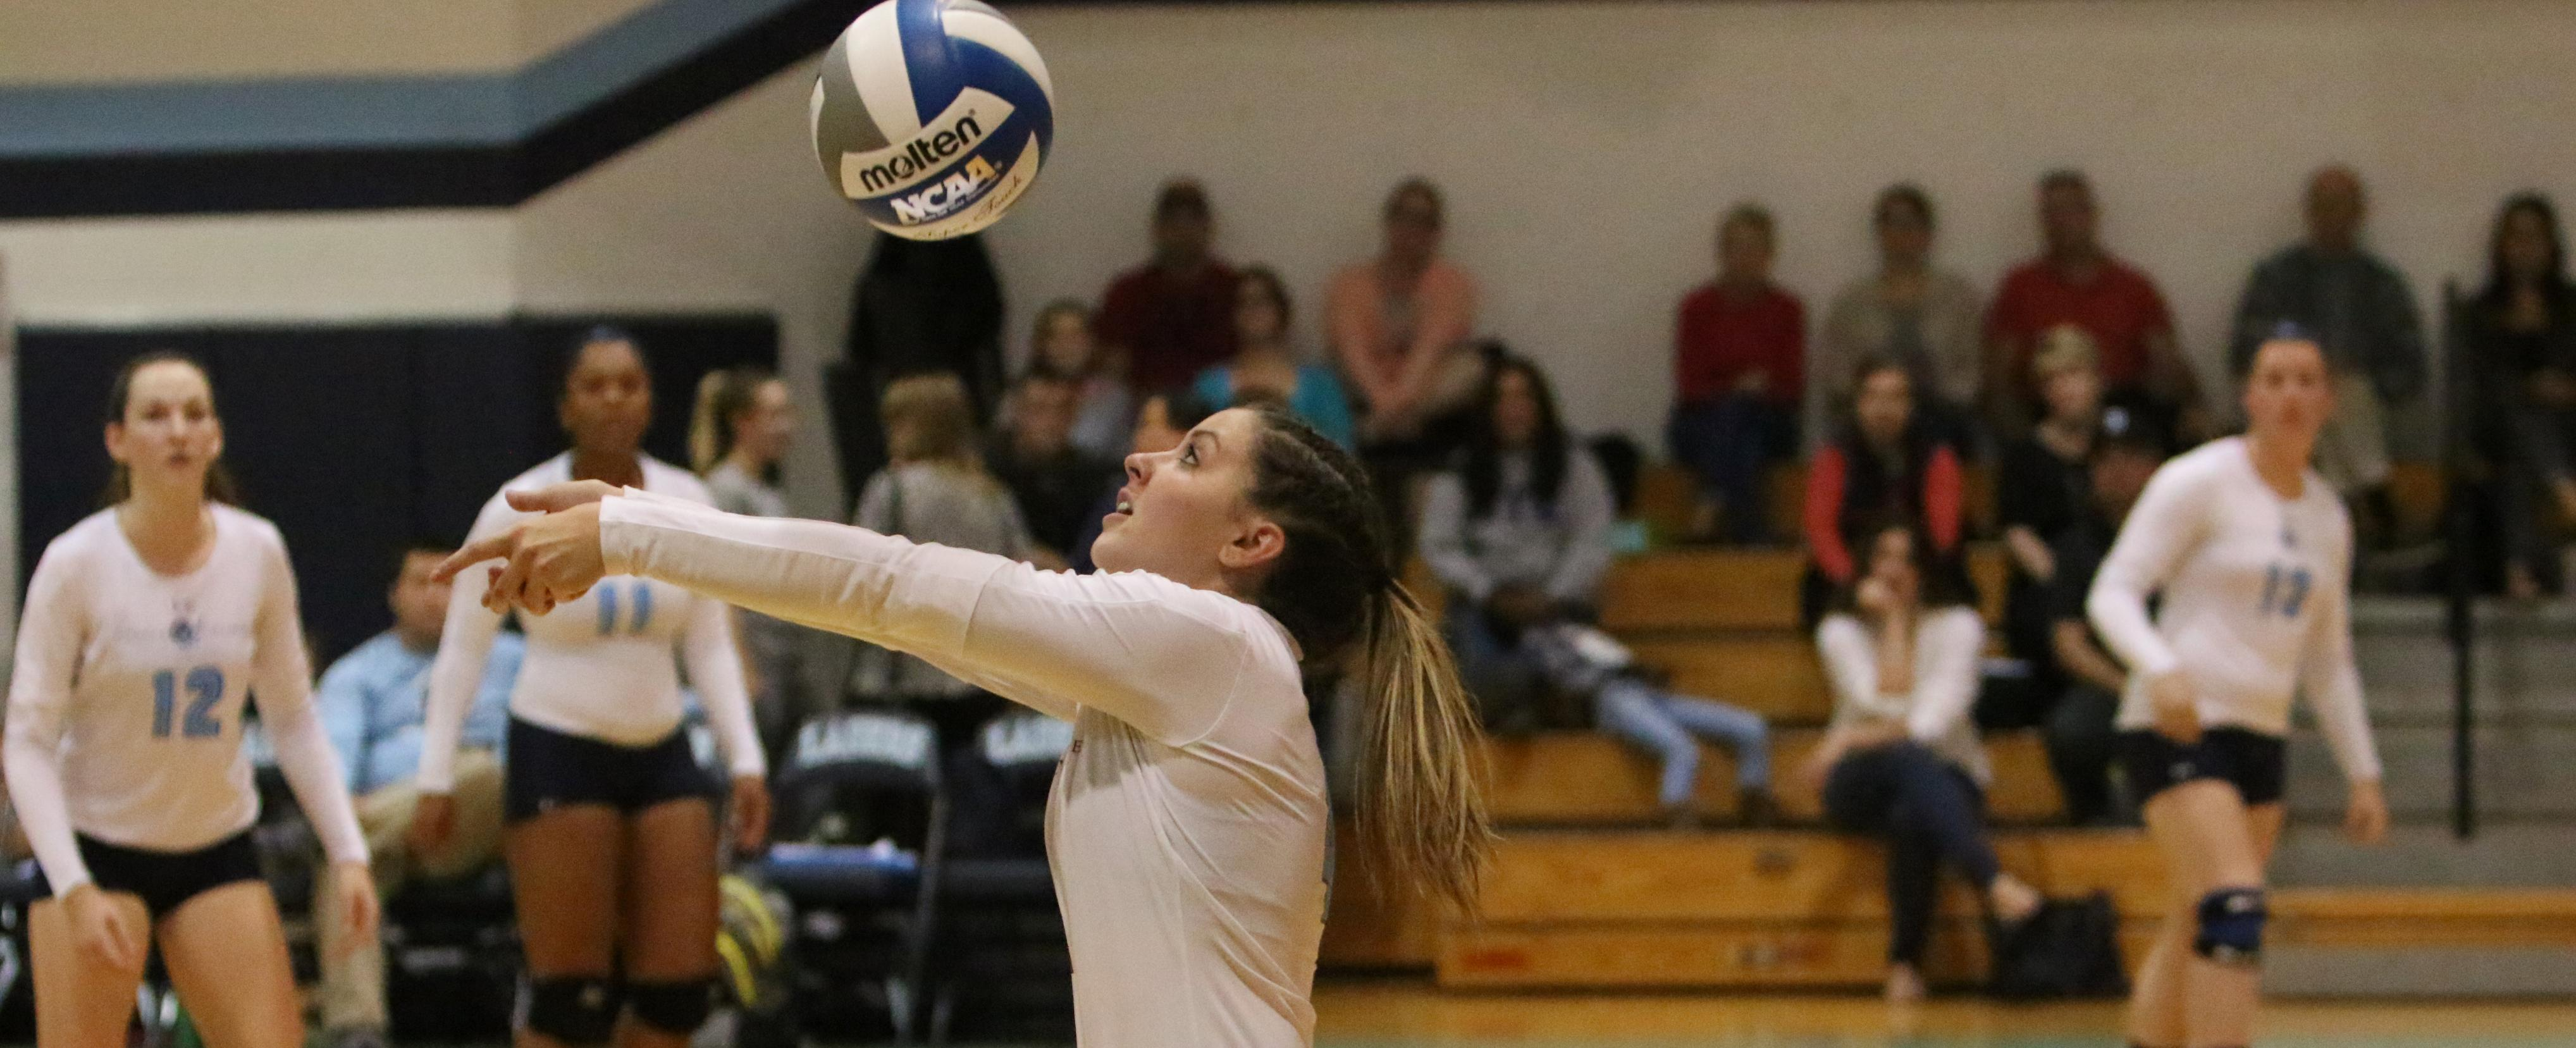 Women's Volleyball Splits with Albertus, JWU in GNAC Tri-Match